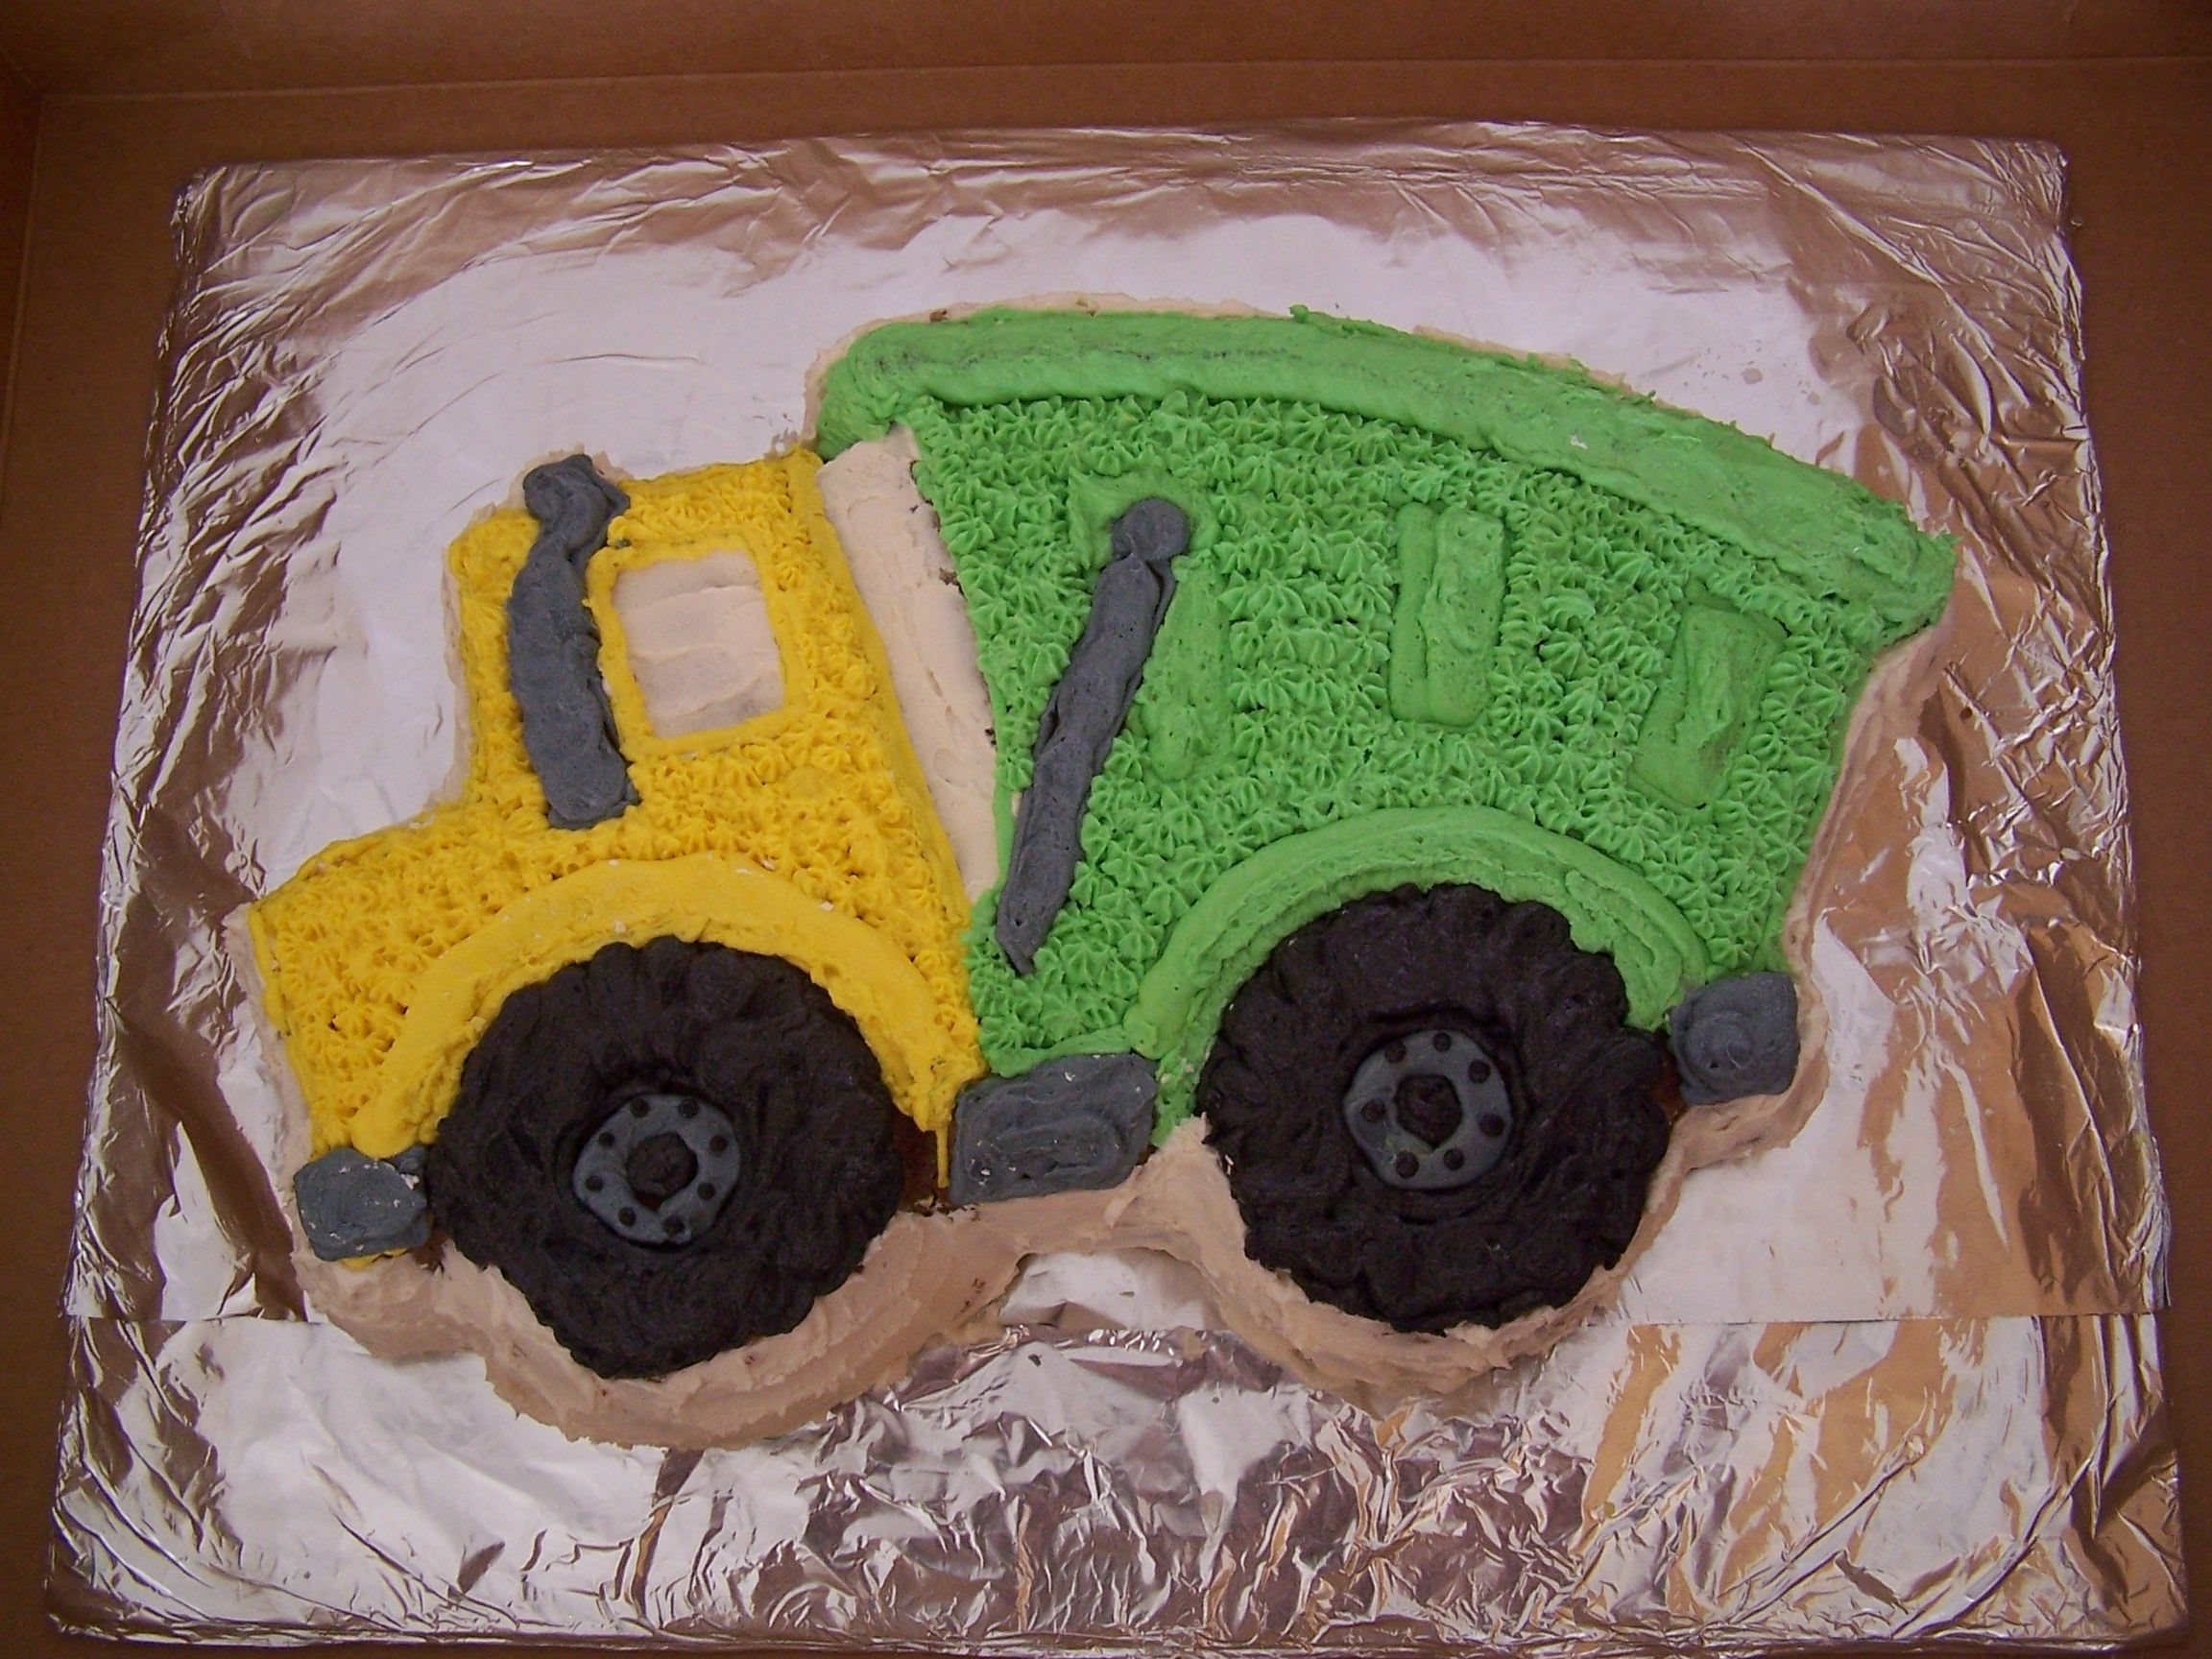 Trash Or Garbage Truck Party Cake Wilton Dump Pan My Parties And Gifts Cakes